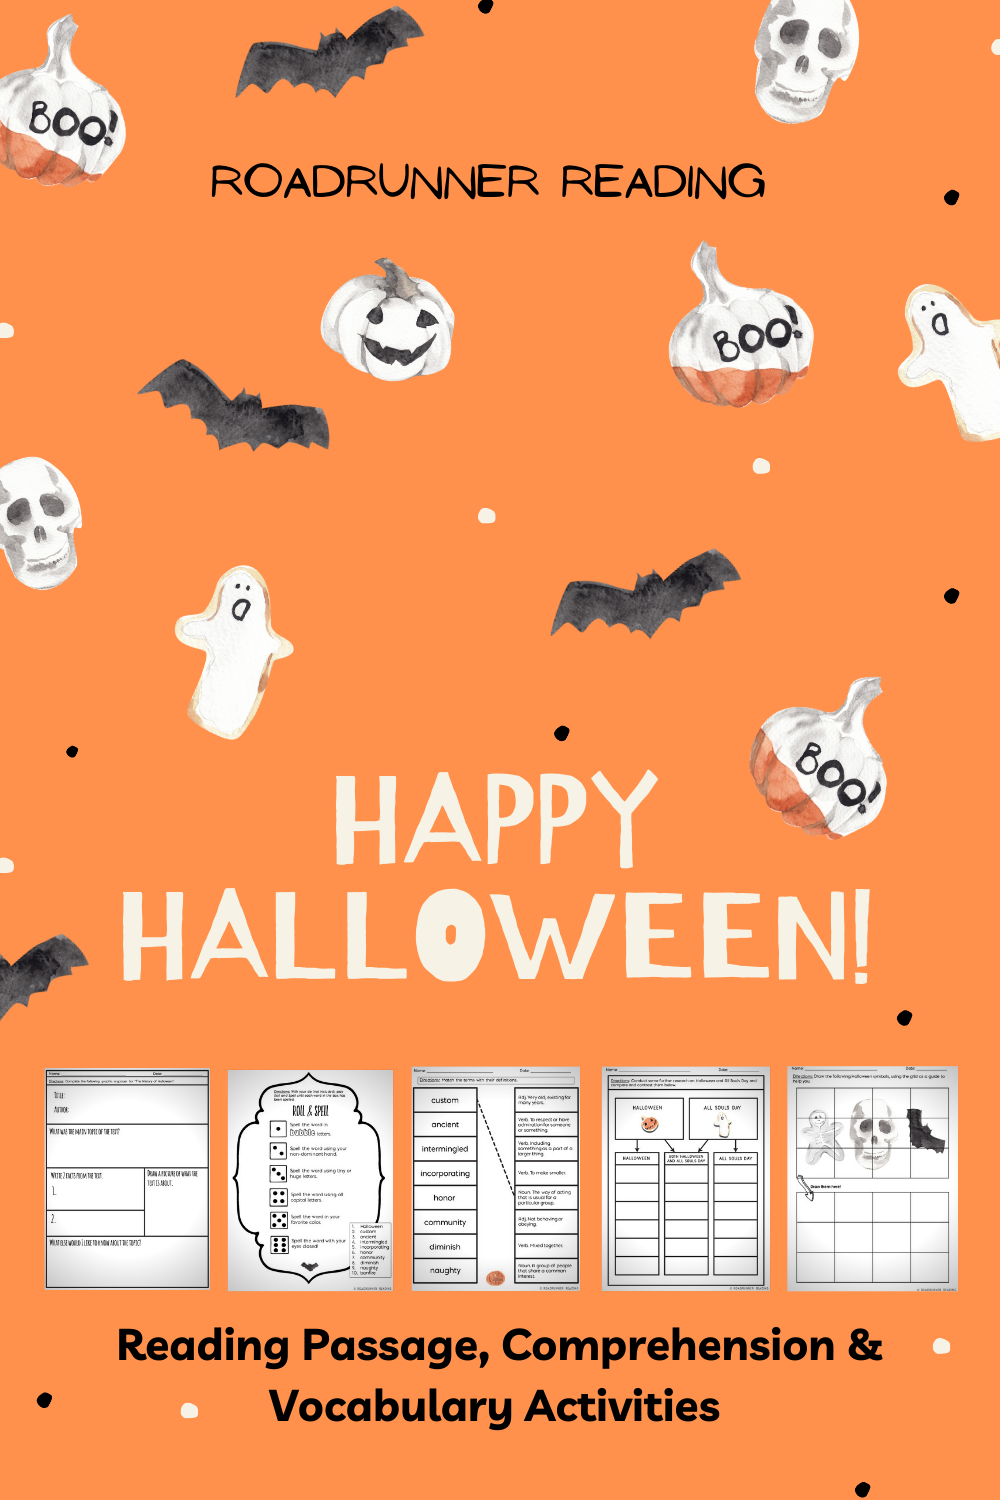 Halloween Reading Passage Comprehension And Vocabulary Activities Reading Passages Halloween Reading Passages Halloween Reading [ 1500 x 1000 Pixel ]